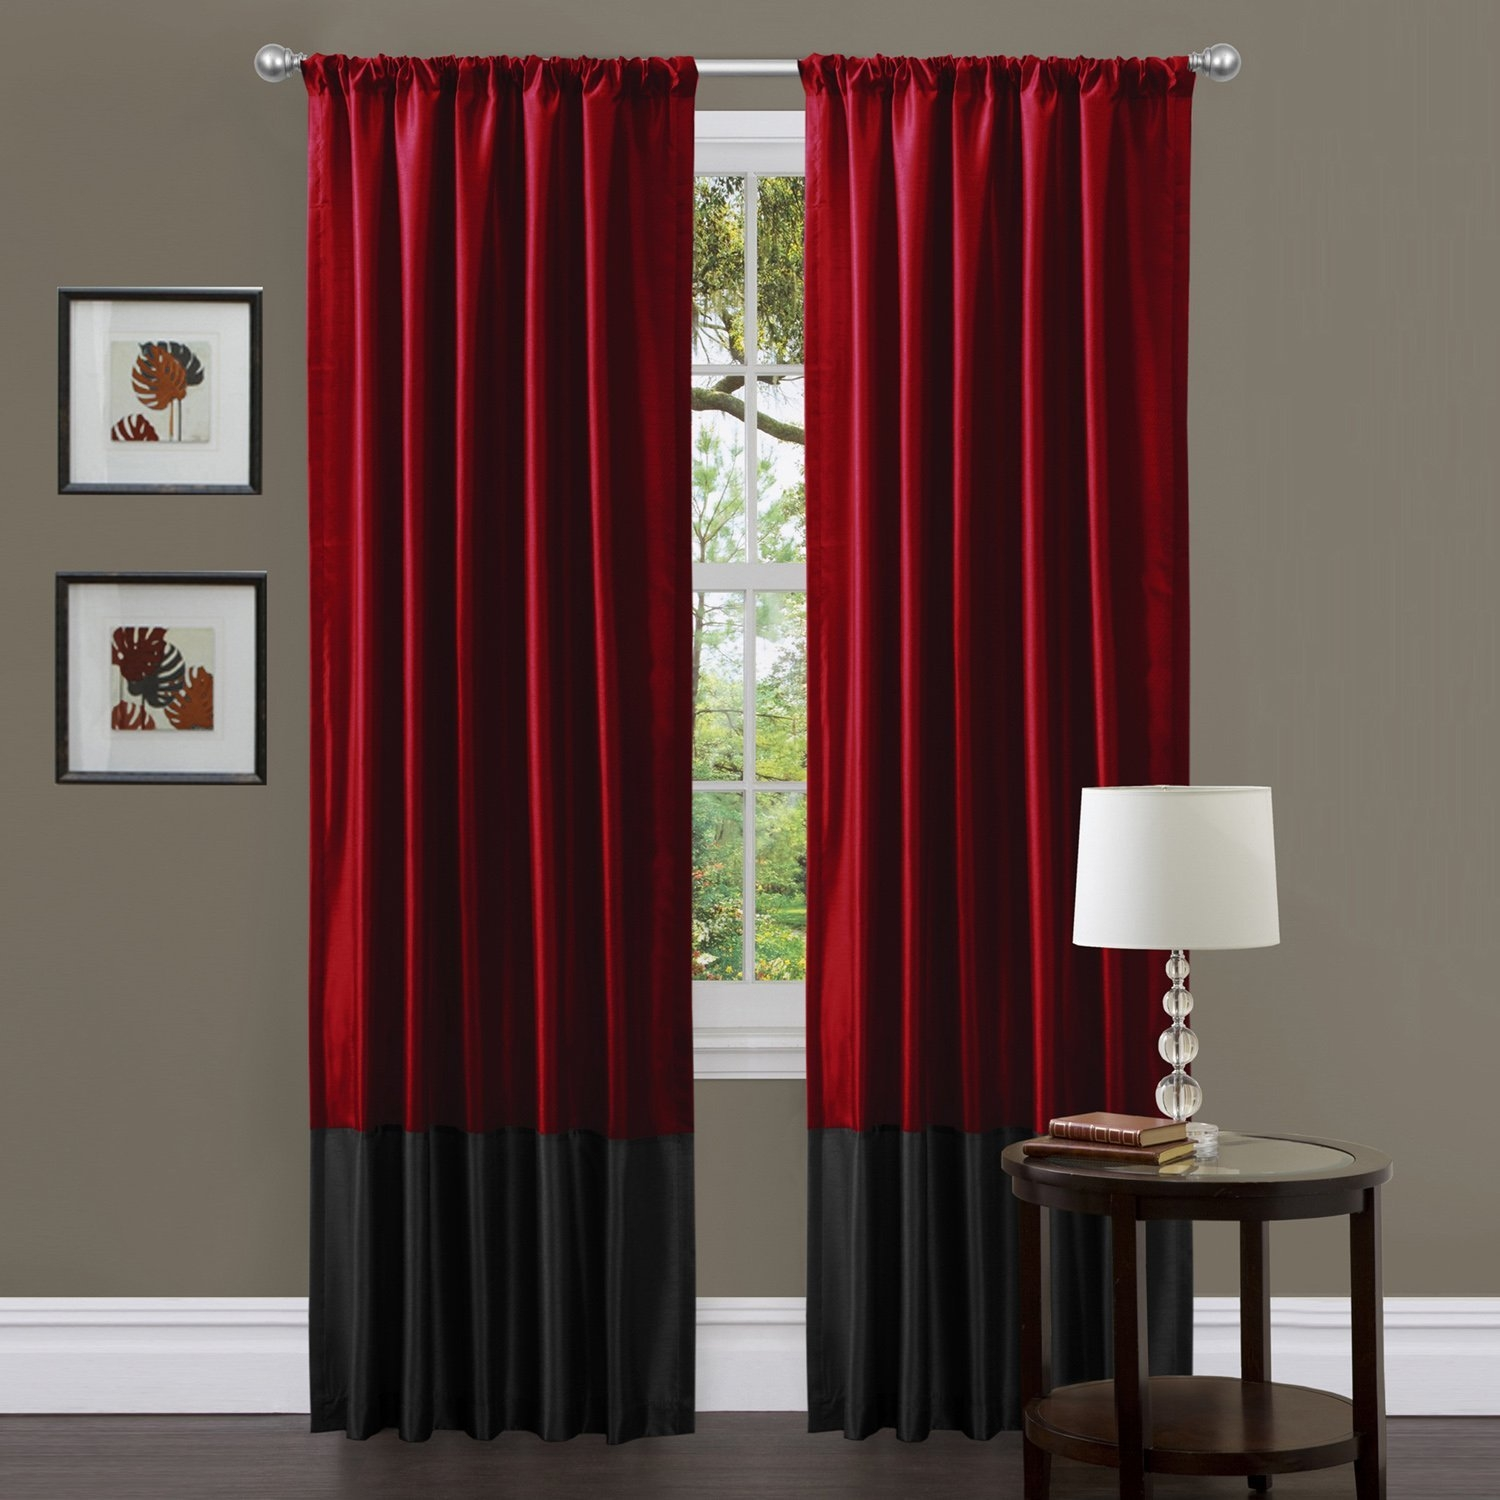 Shop Amazon Window Panels For 54 Inch Long Curtain Panels (View 21 of 25)